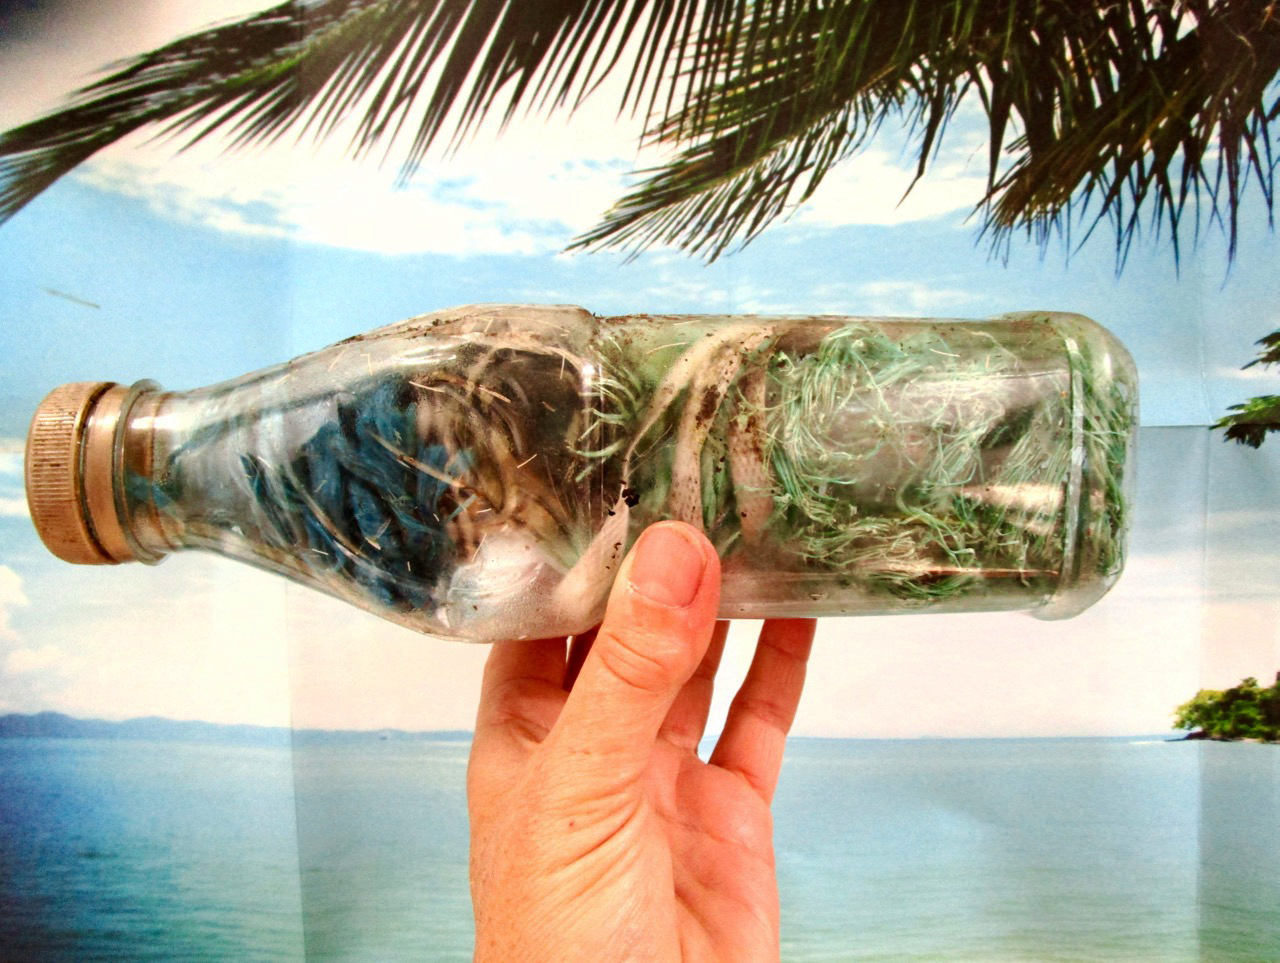 a message in a bottle?